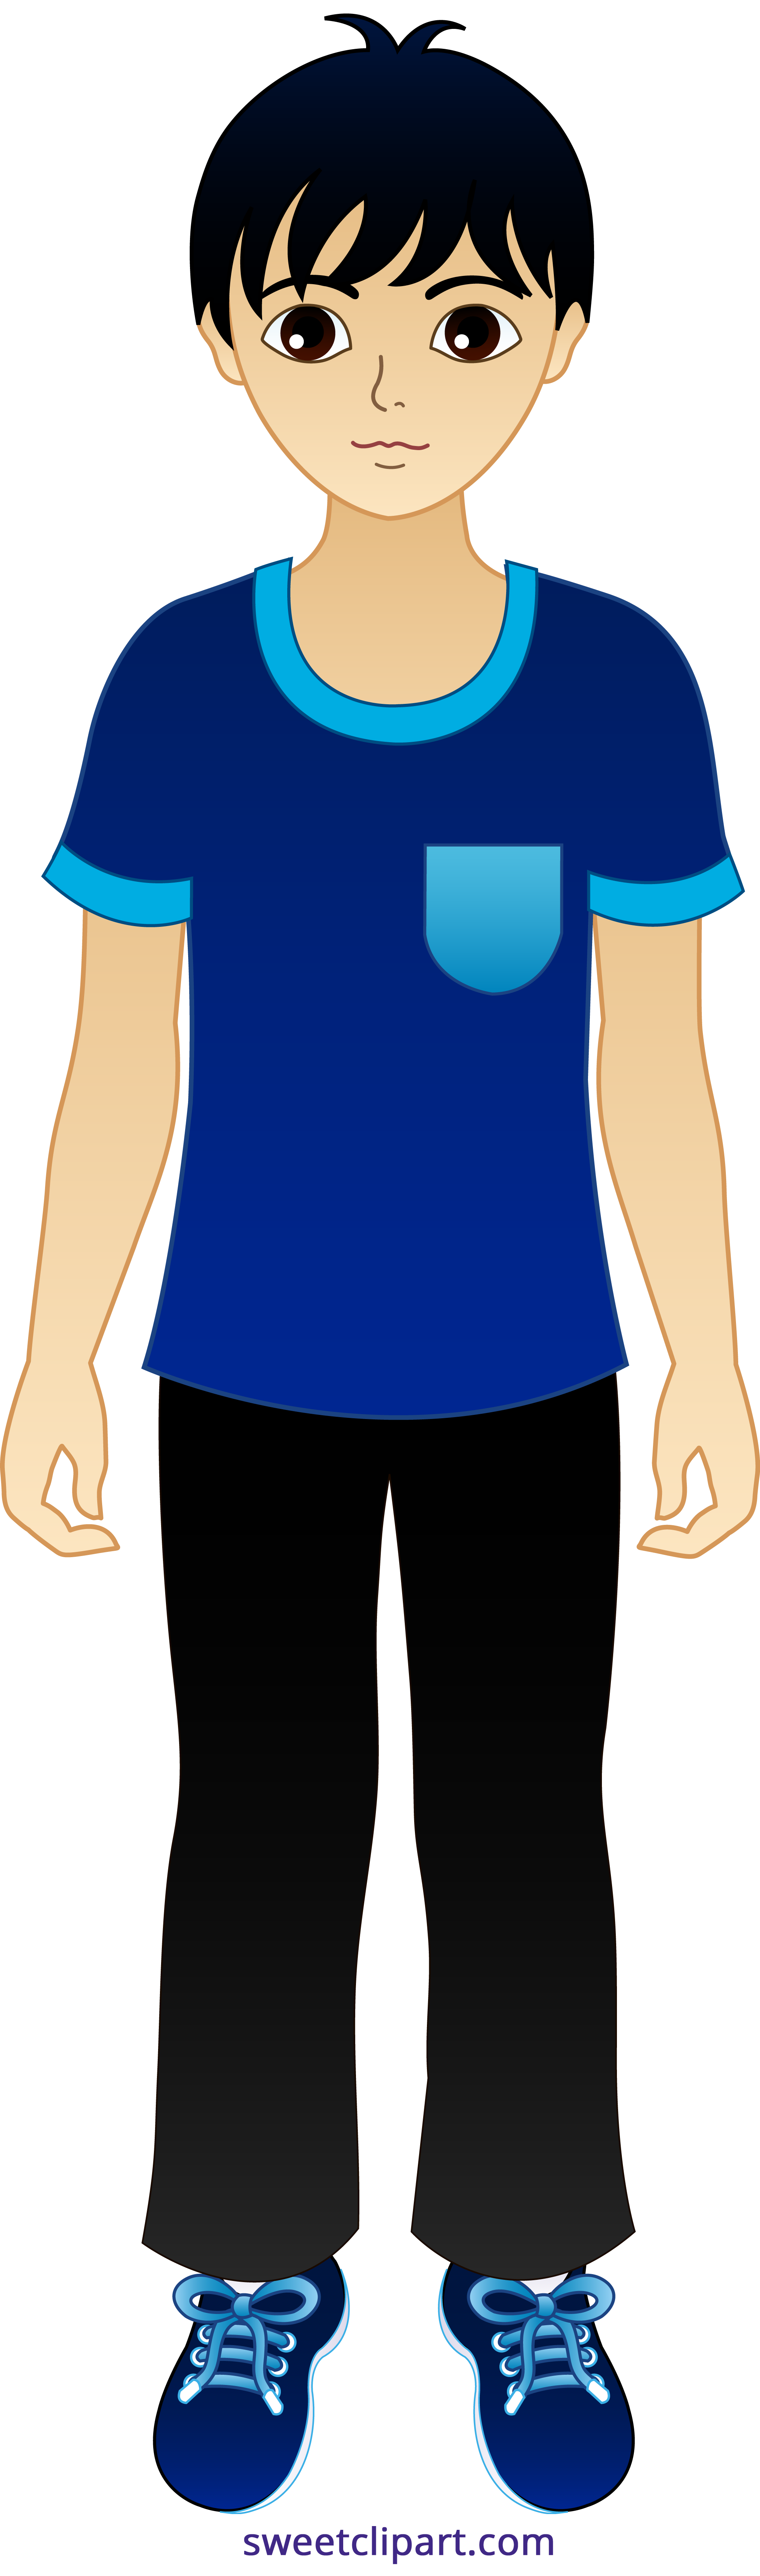 Shirts Clipart Boy Clipart Shirts Boy Transparent Free For Download On Webstockreview 2021